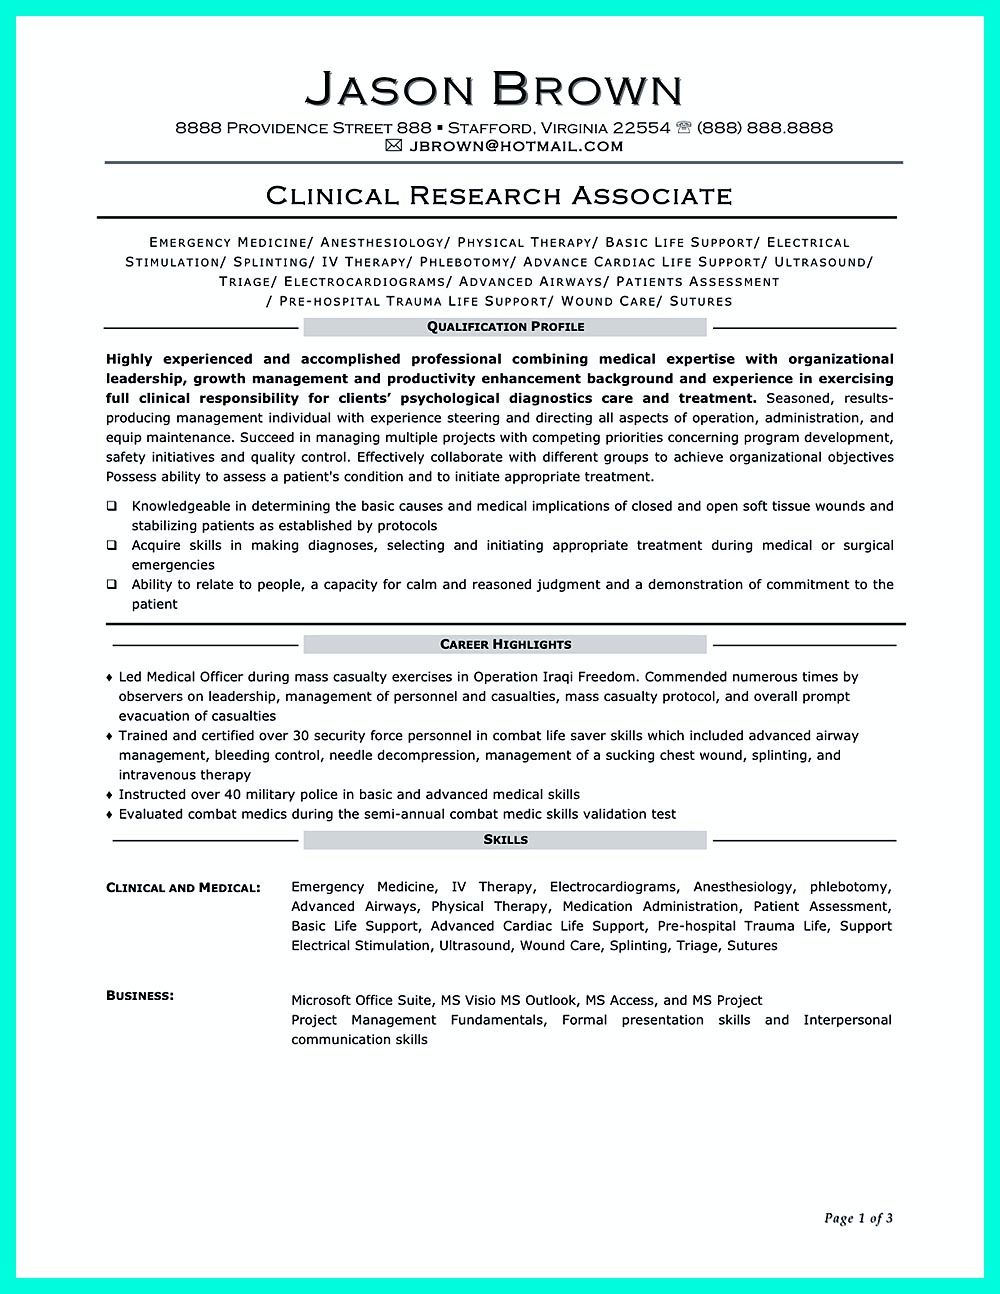 Clinical Research Associate Resume Objectives Are Needed To Convince Your  Future Company That Your Goal And  Do You Need An Objective On A Resume